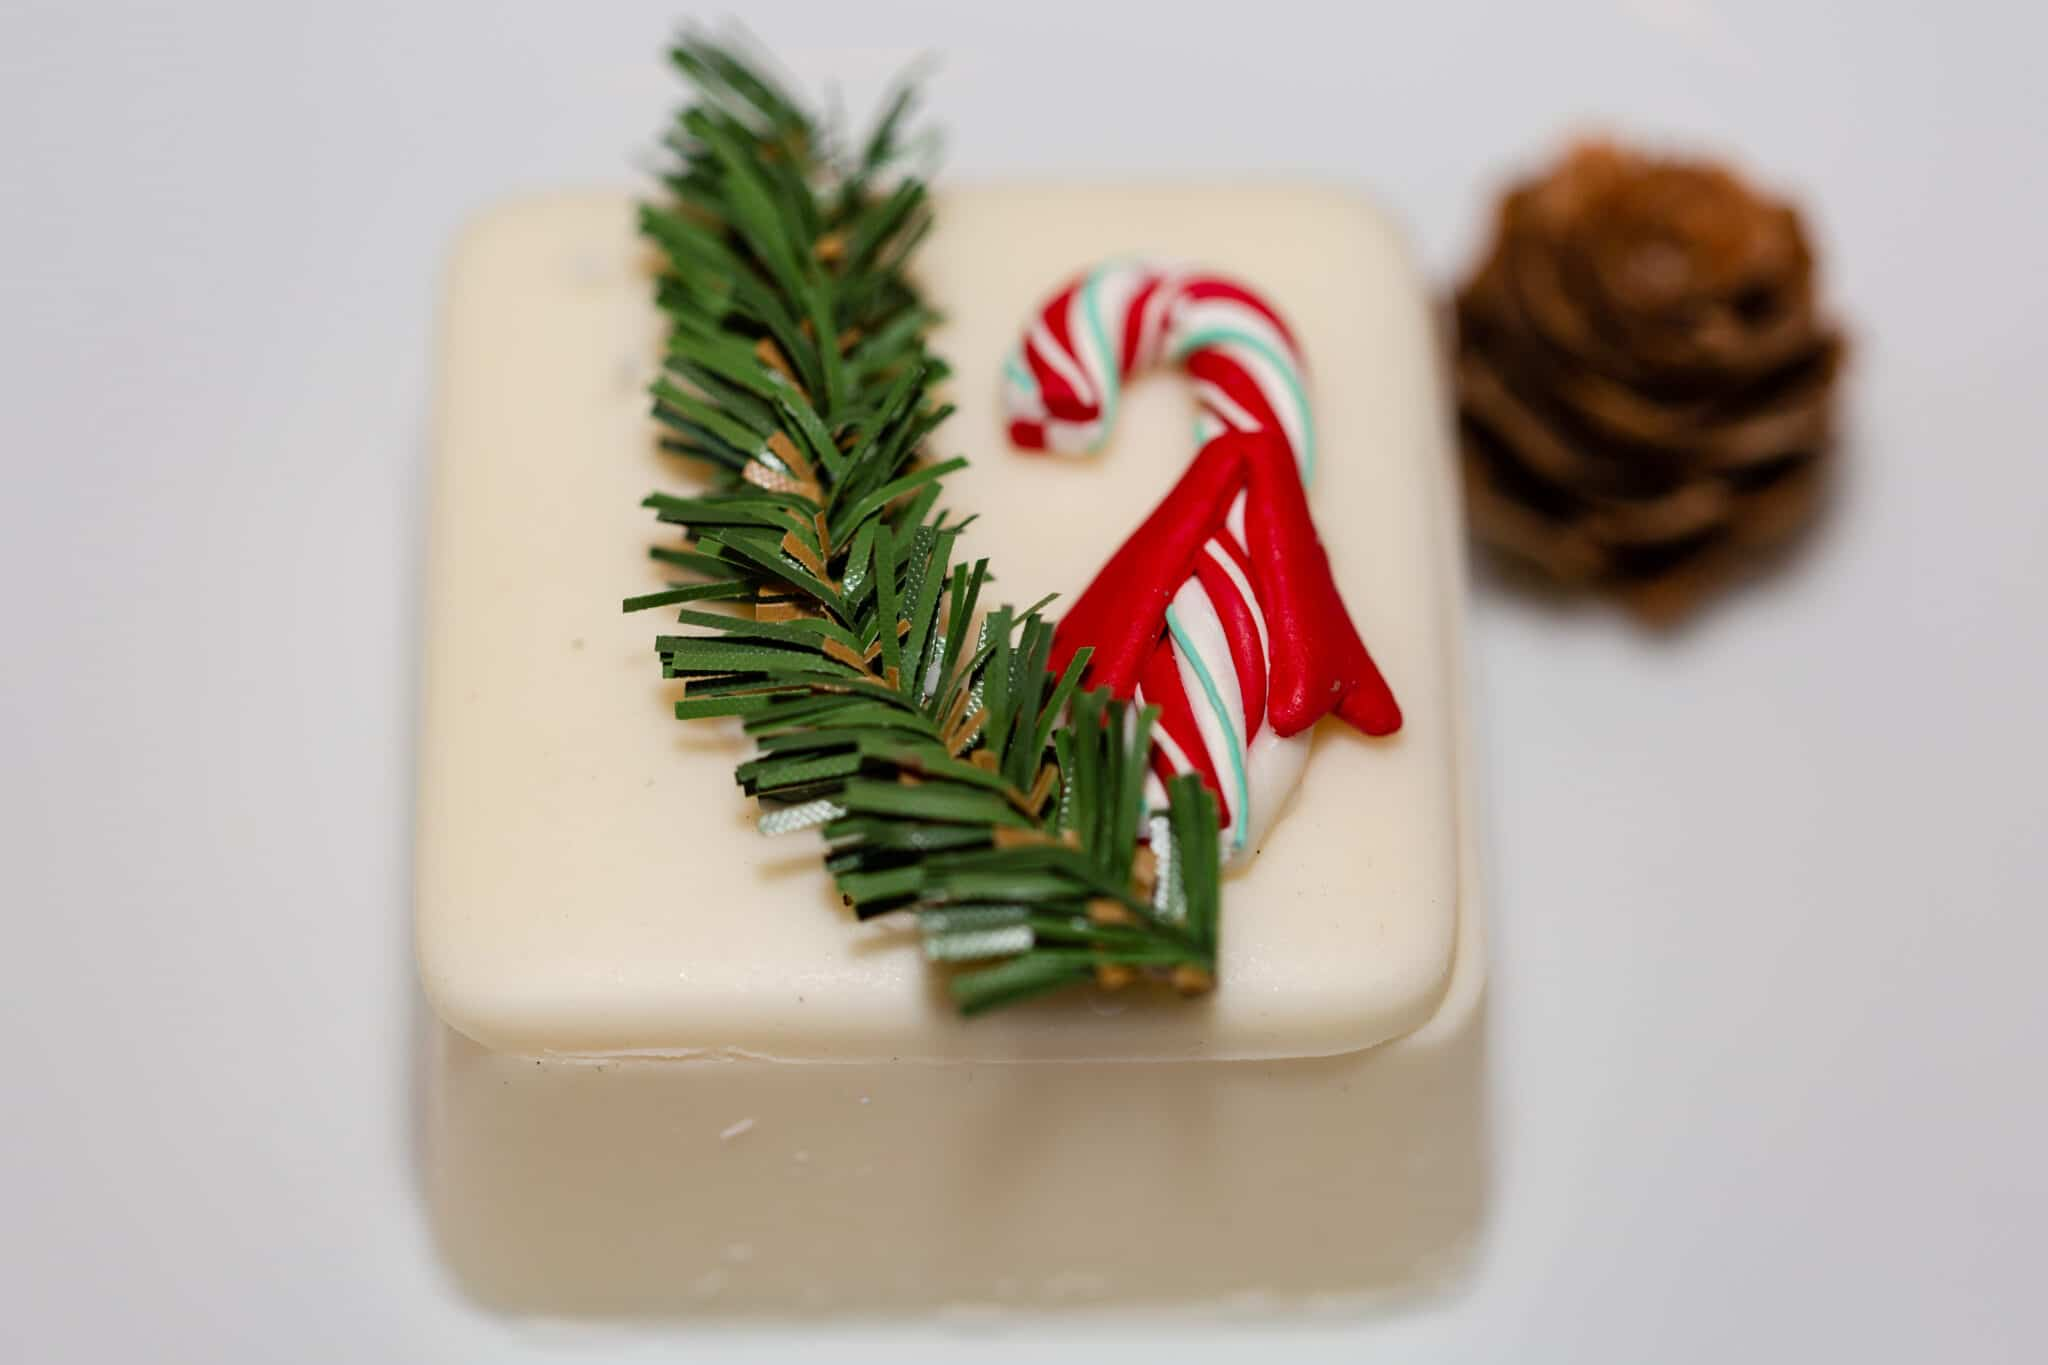 a white chocolate square decorated with greenery and a small candy cane for Christmas themed wedding inspiration